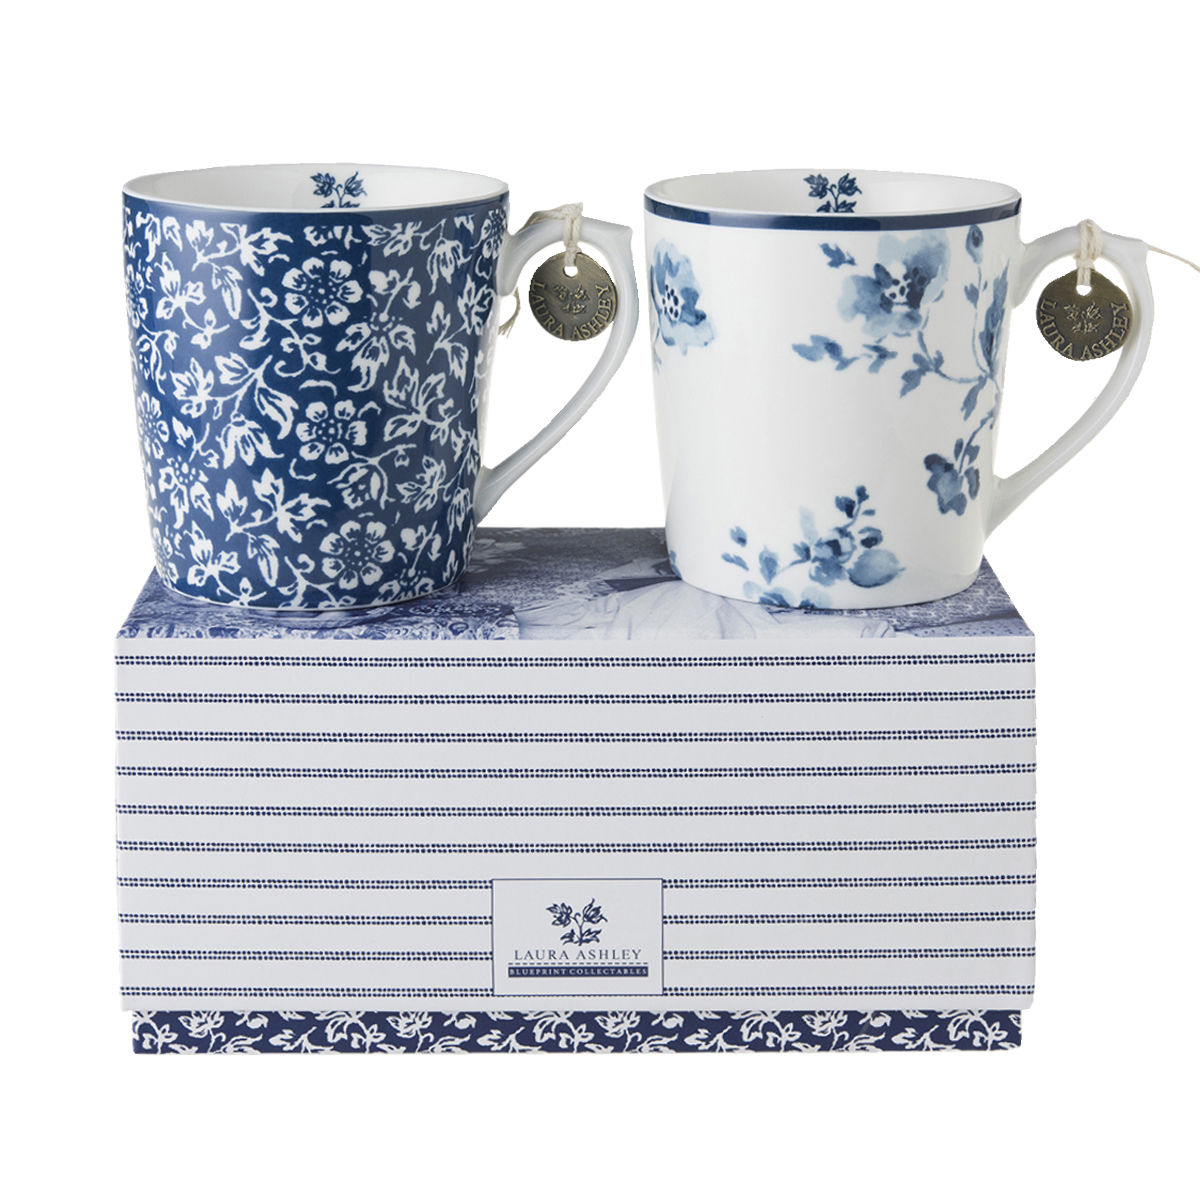 Laura Ashley Boxed Set/2 Mugs 10 oz - product images  of